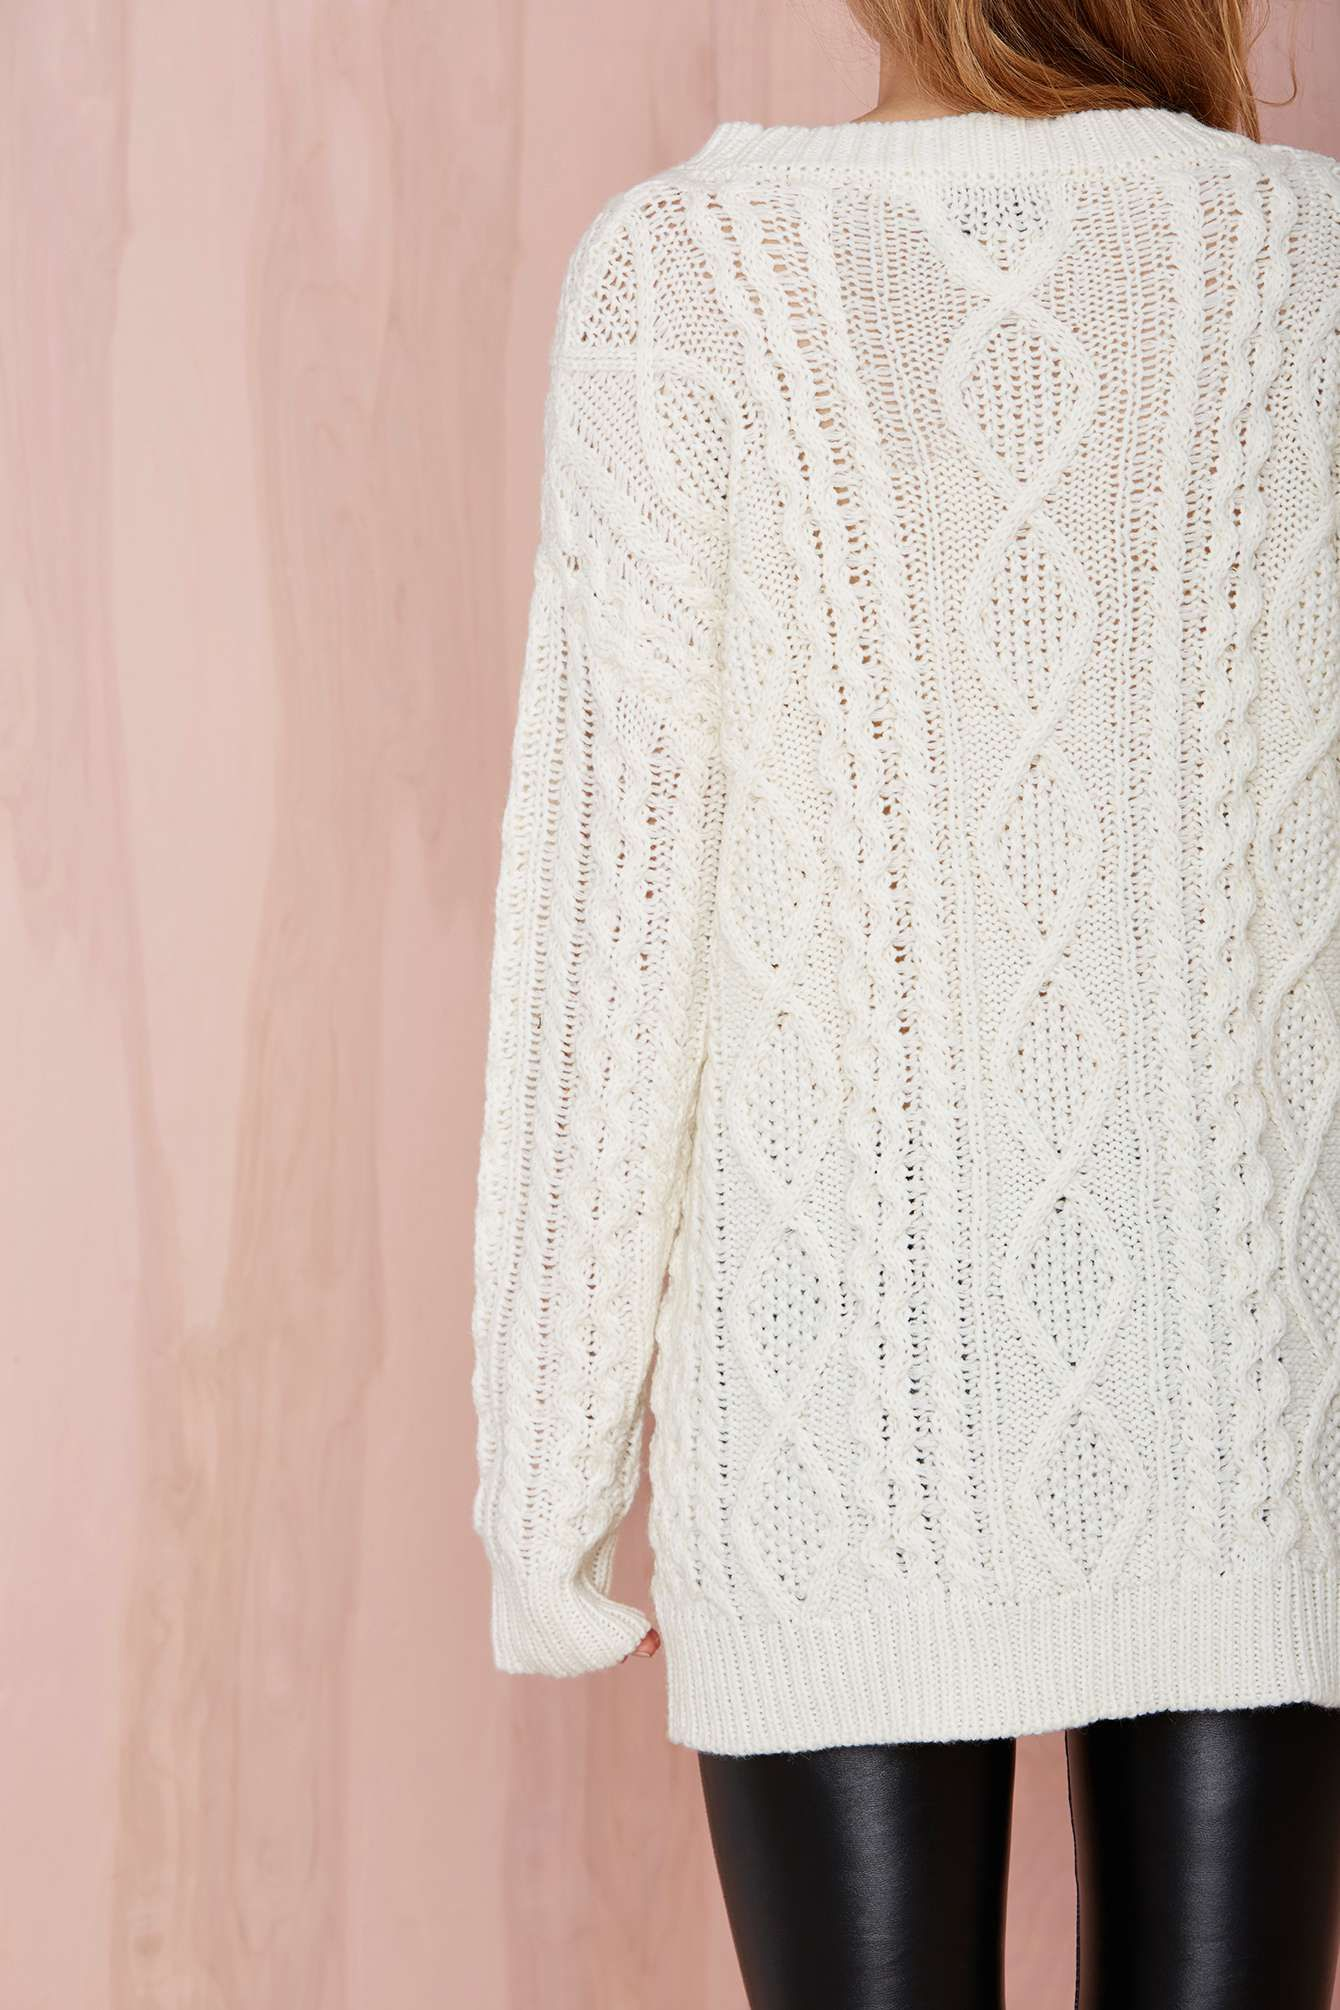 Crochet What's Up Hello Lace Dress | Cable sweater and Cable